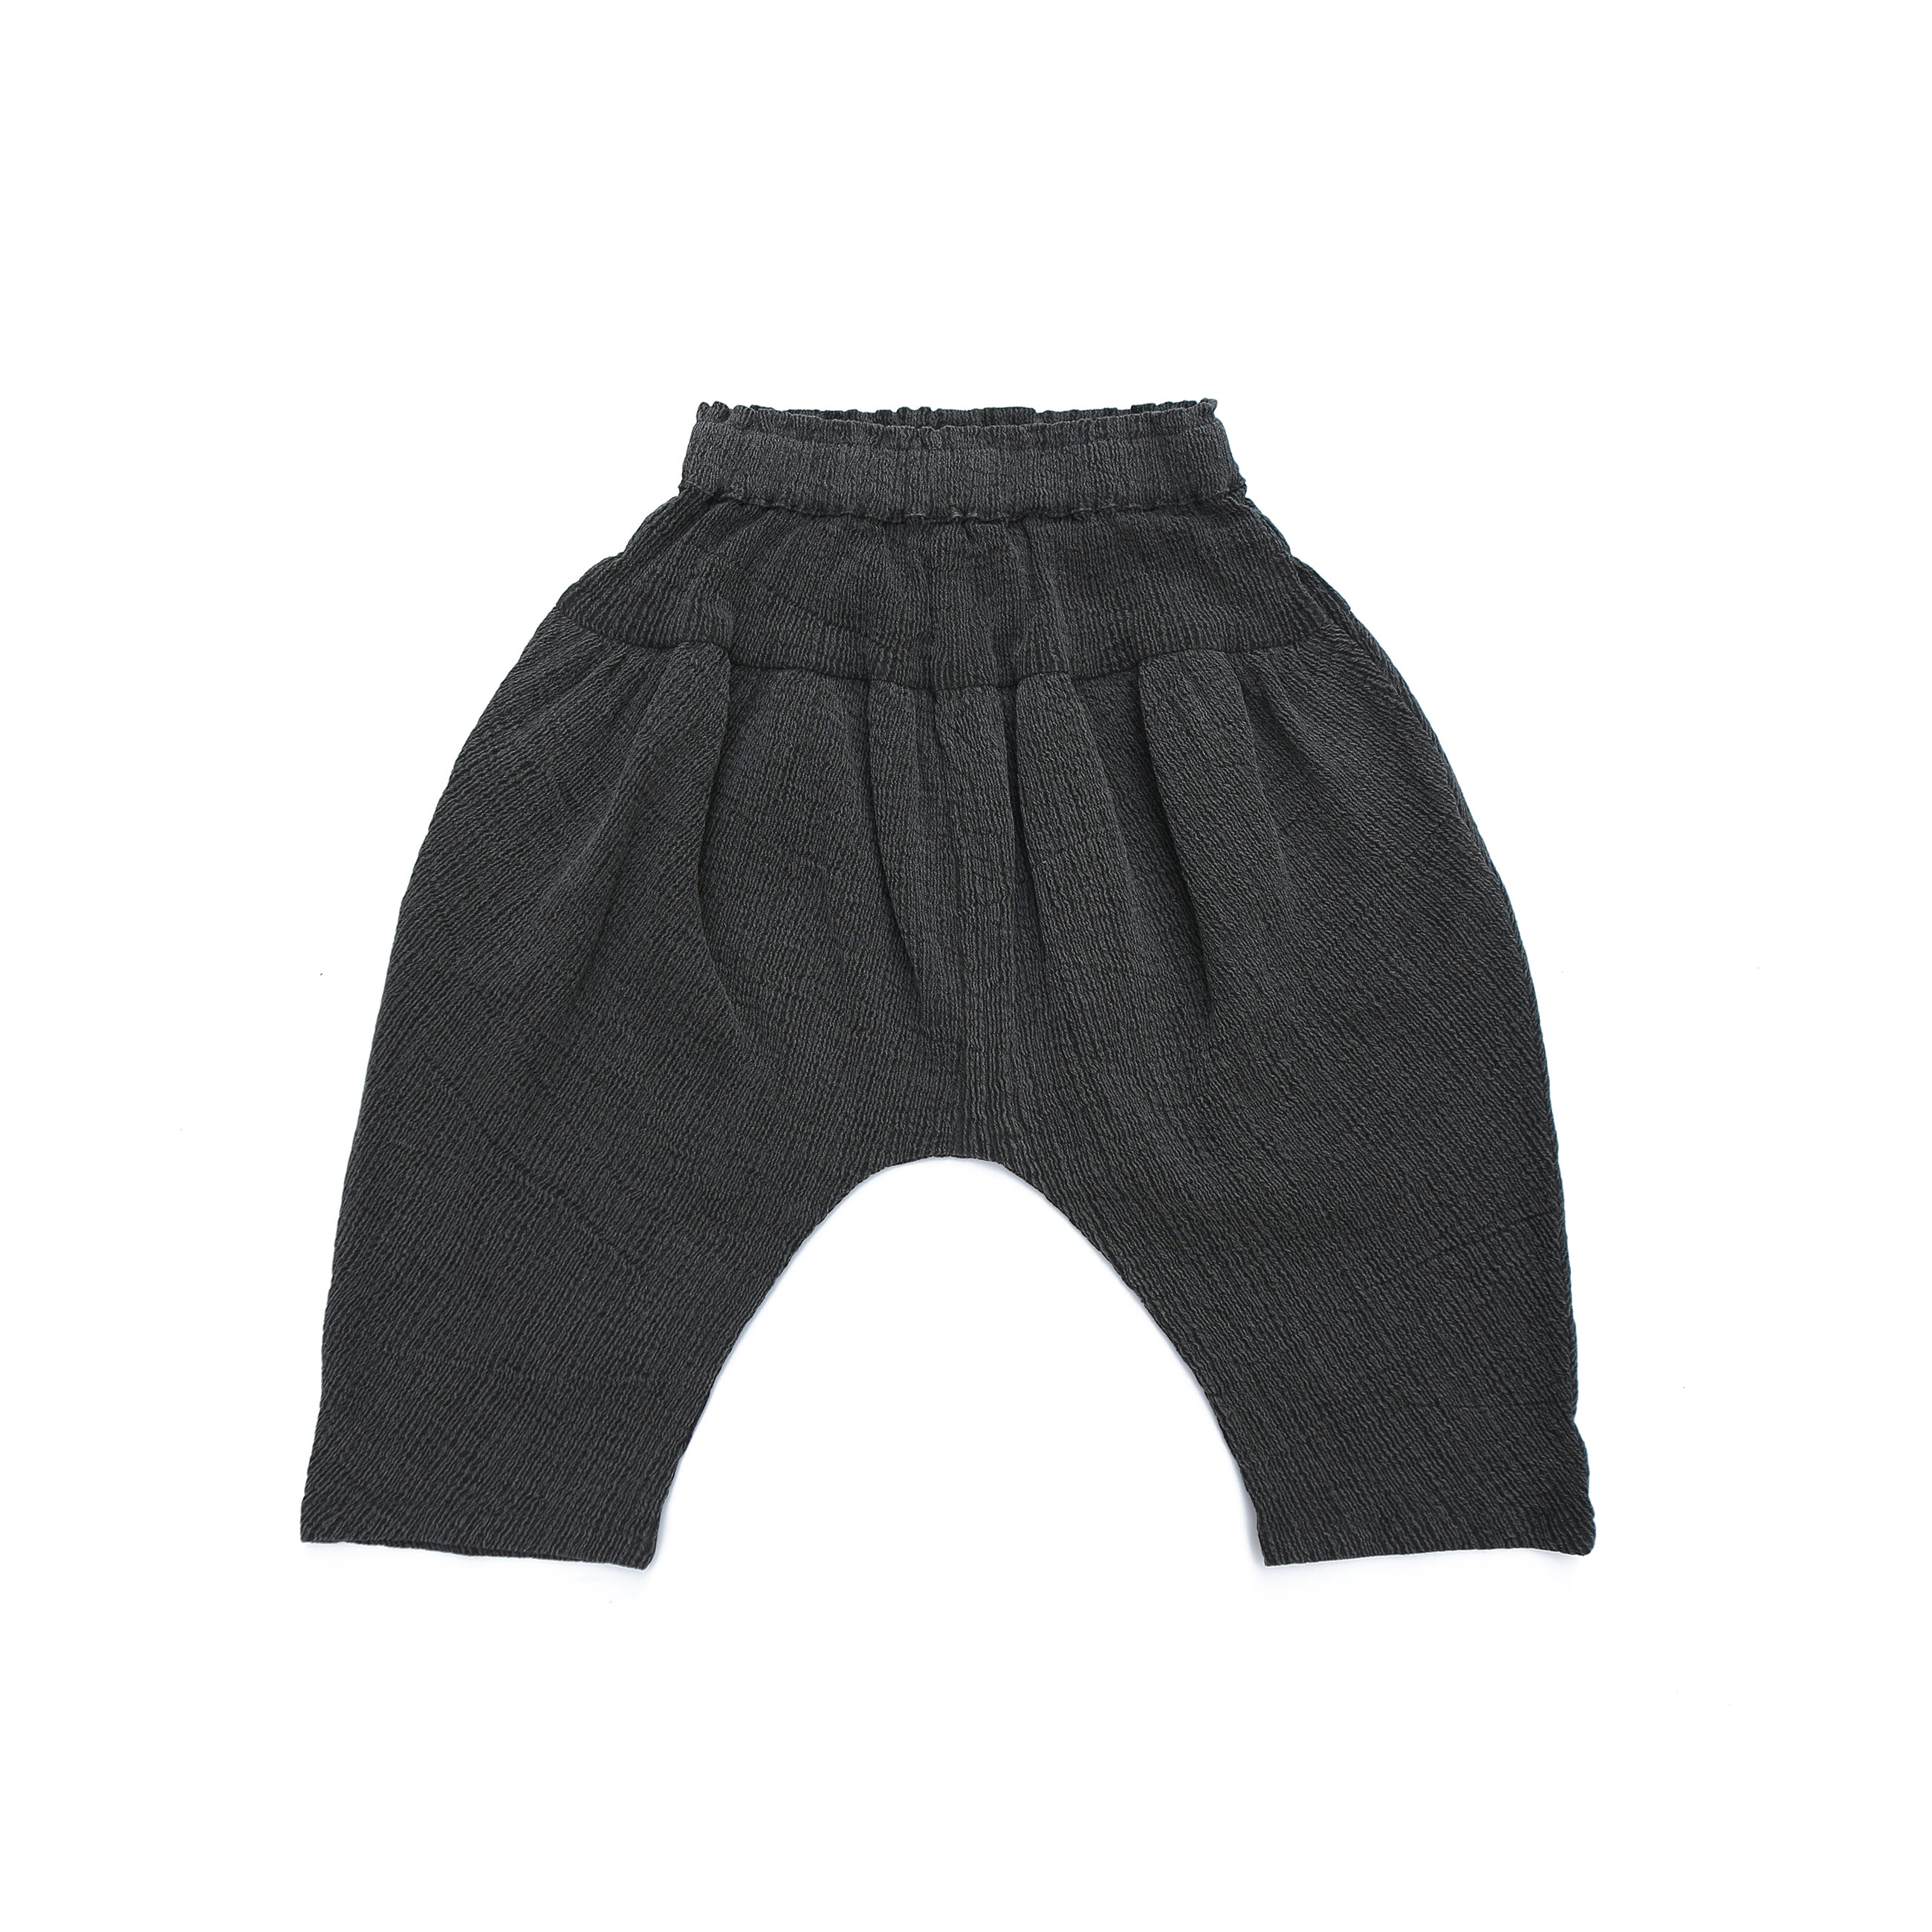 Tambere Pleated Cropped Harem Kid's Pant in Charcoal | BIEN BIEN